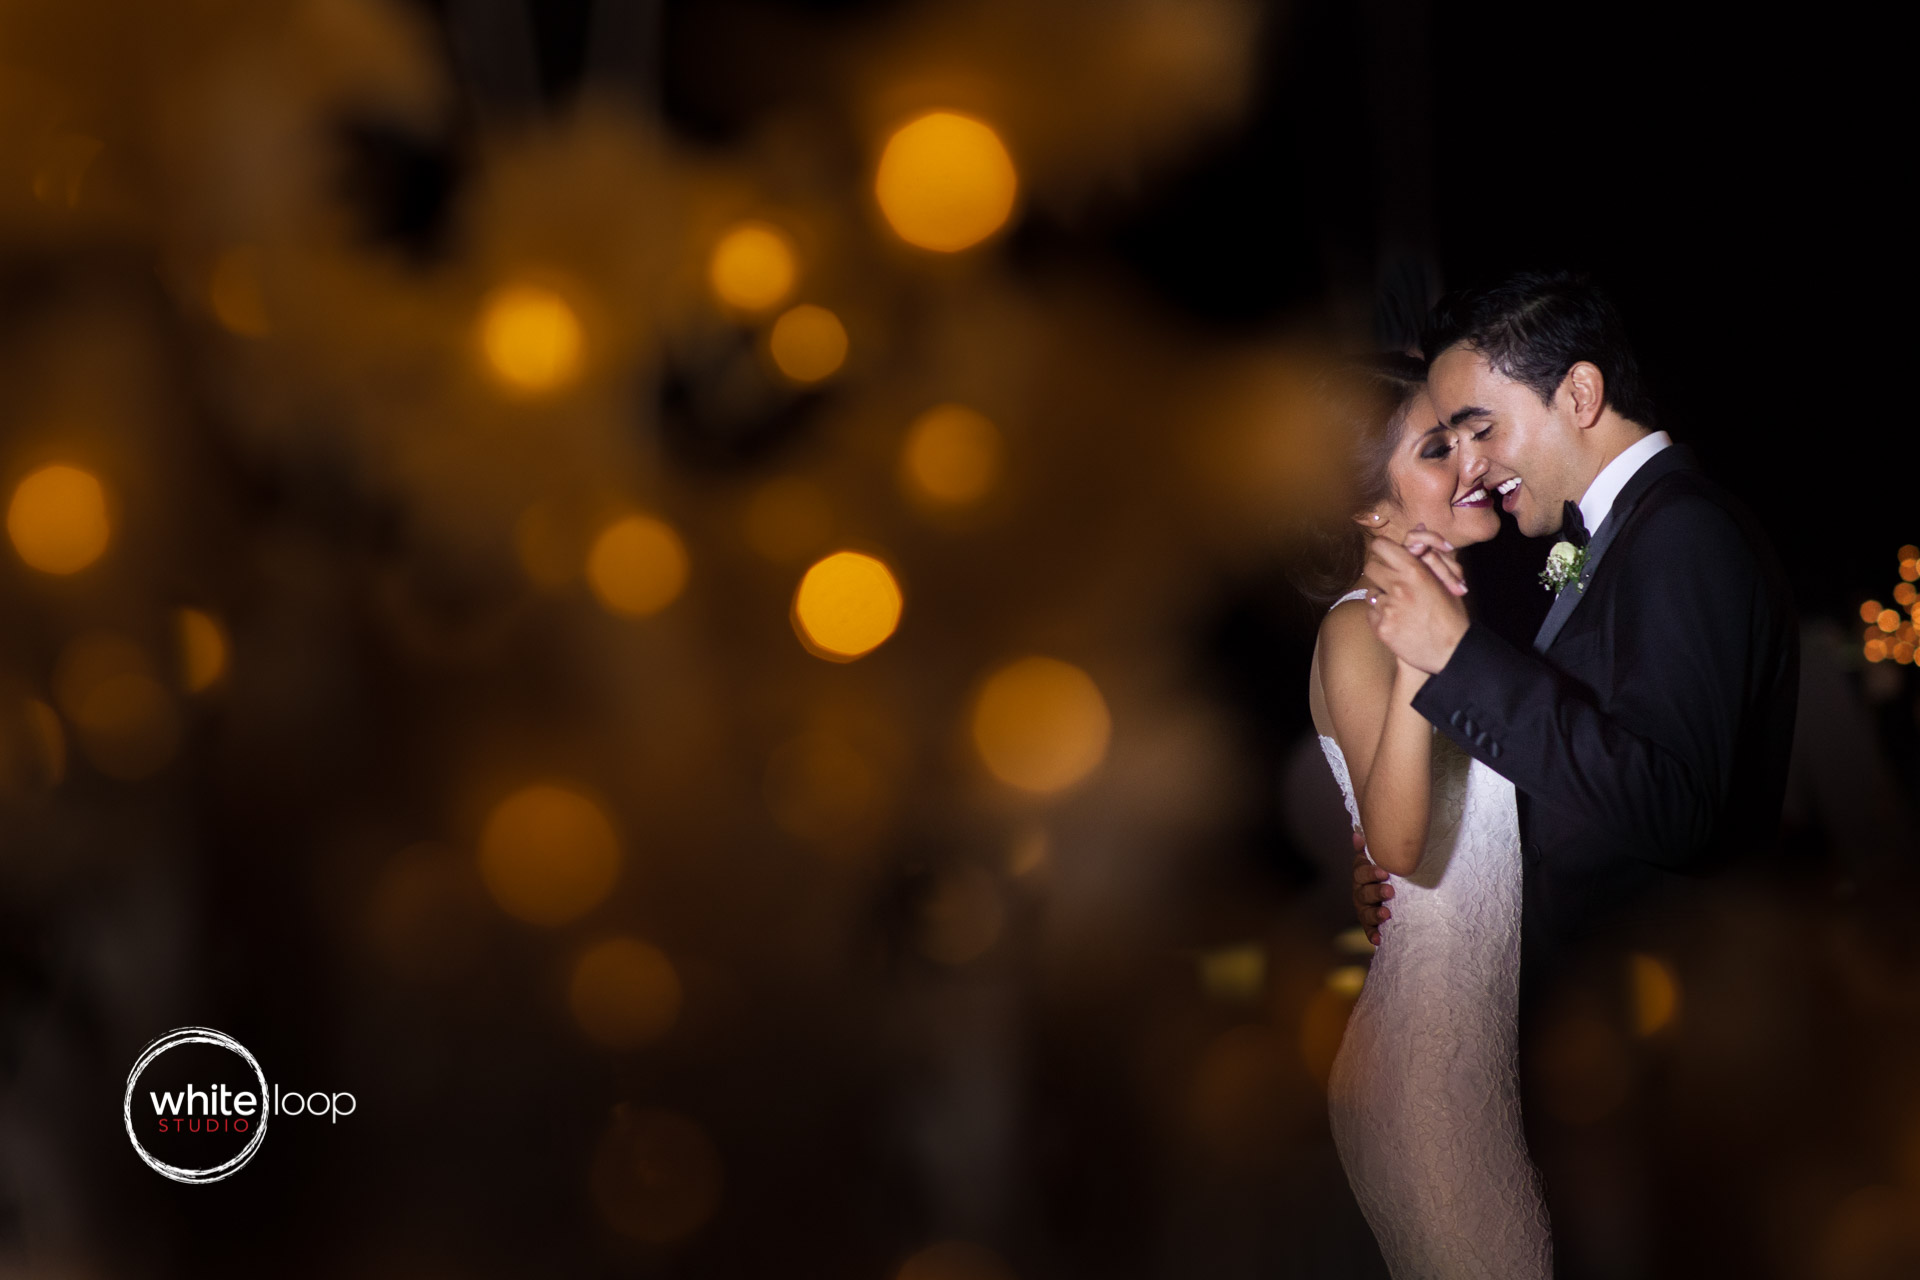 Vero and Misael, Acapulco, First Dance